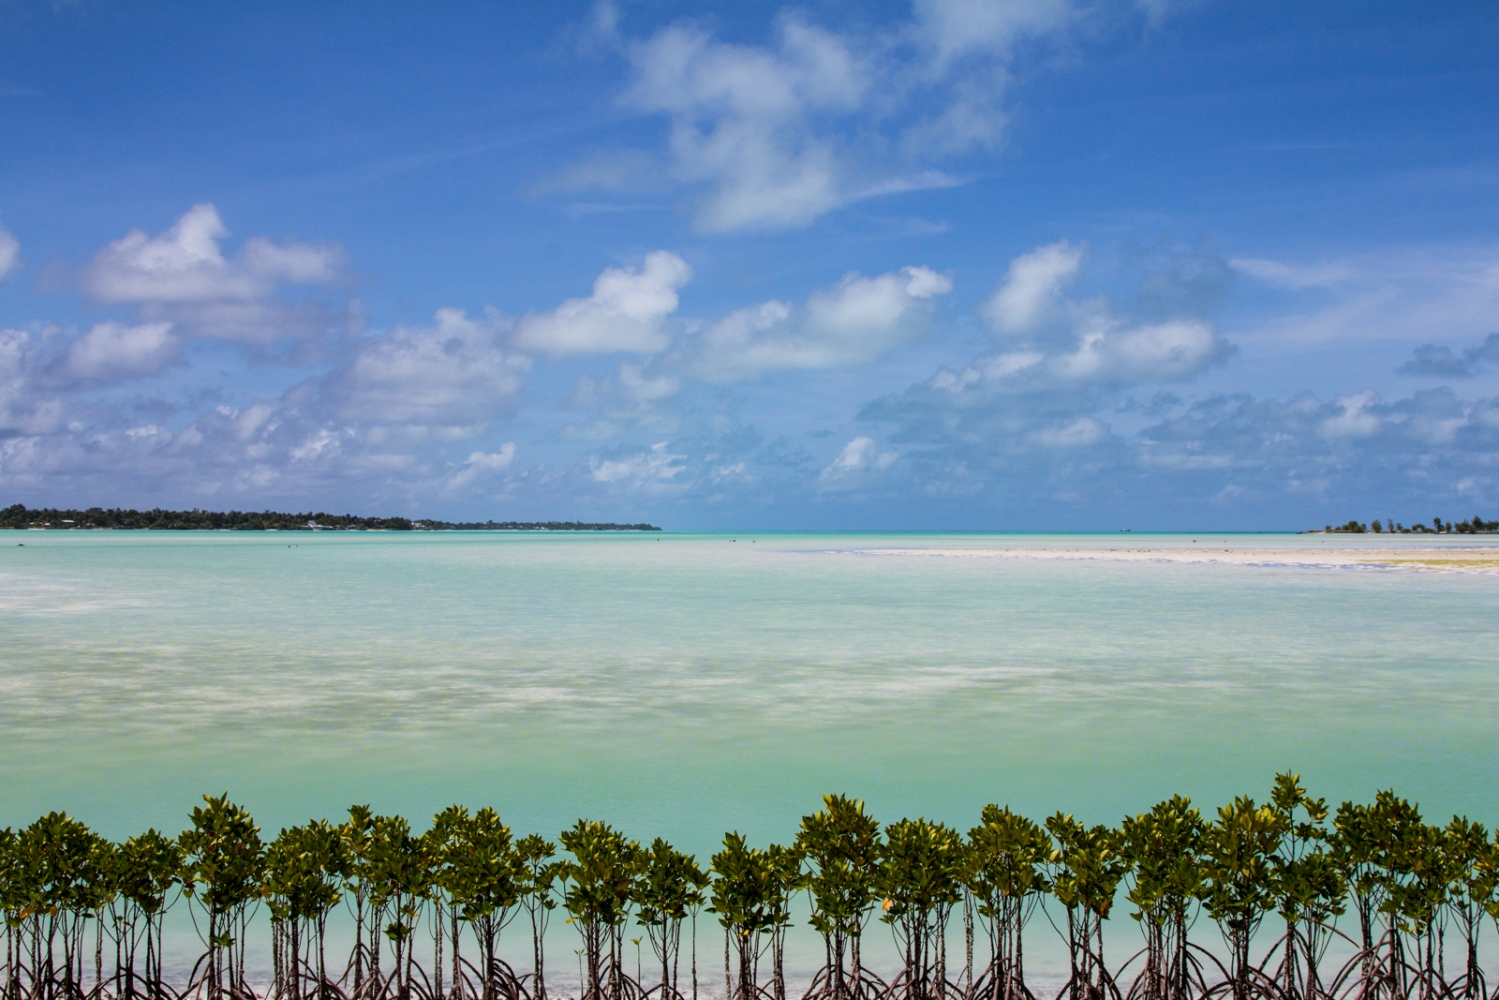 These newly planted mangroves are part of Kiribati's adaptive measures against sea-level rise. Kiribati's string of islands are some of the most vulnerable locations on Earth, as many islands do not reach 3m above sea level. Almost all mangrove forests are located in the developing world and are increasingly at risk and being cleared faster than terrestrial rainforests. With climate change impacts knocking on the doors of many nations such as Kiribati, mangroves play a key role. Mangroves are carbon sinks, act as buffer zones against waves during harsh storms and cyclones, hold coastal banks together limiting land erosion and also act as the coastlines Kidney's, filtering out pollutants, heavy metals and runoff sediment. Creating cleaner, clearer and healthier oceans.